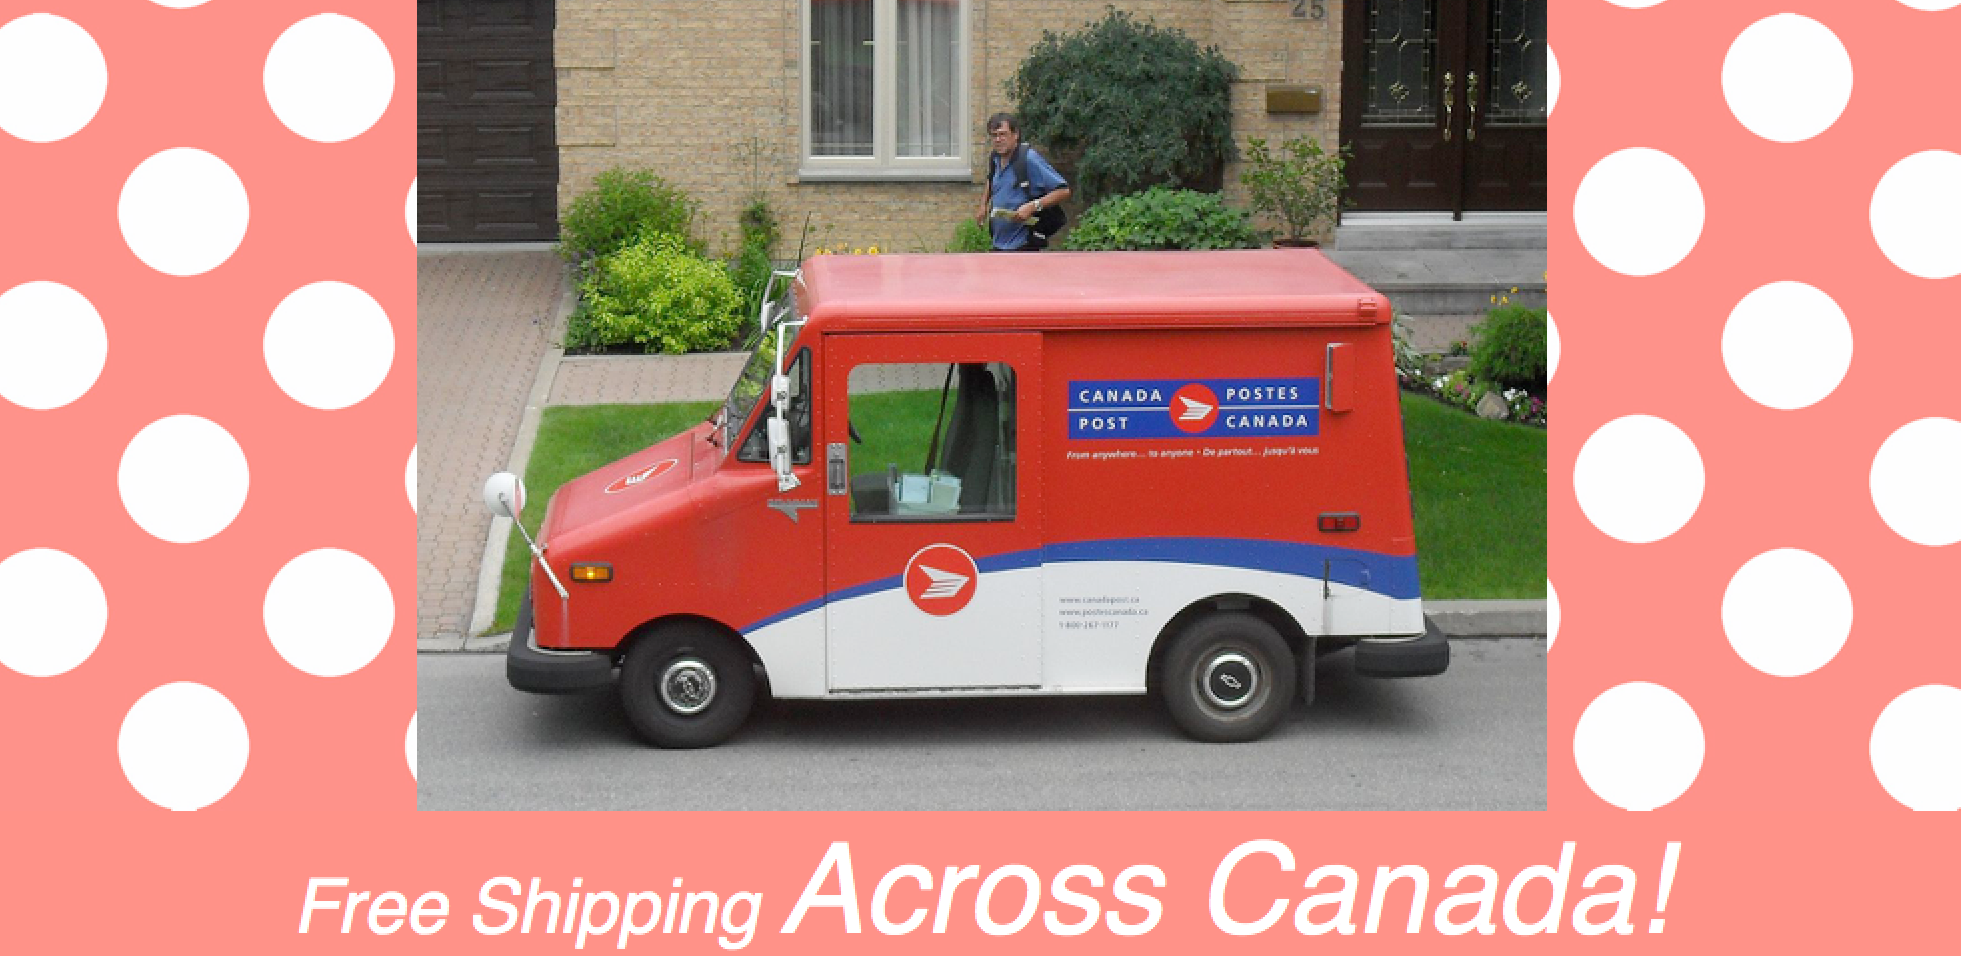 In most cases where free shipping is offered, it's instead cleverly added to the prices of the items, so you're not actually getting free shipping. Now, we're of the philosophy that we should be open with our customers, so tricking you into thinking you're getting online candy store free shipping .